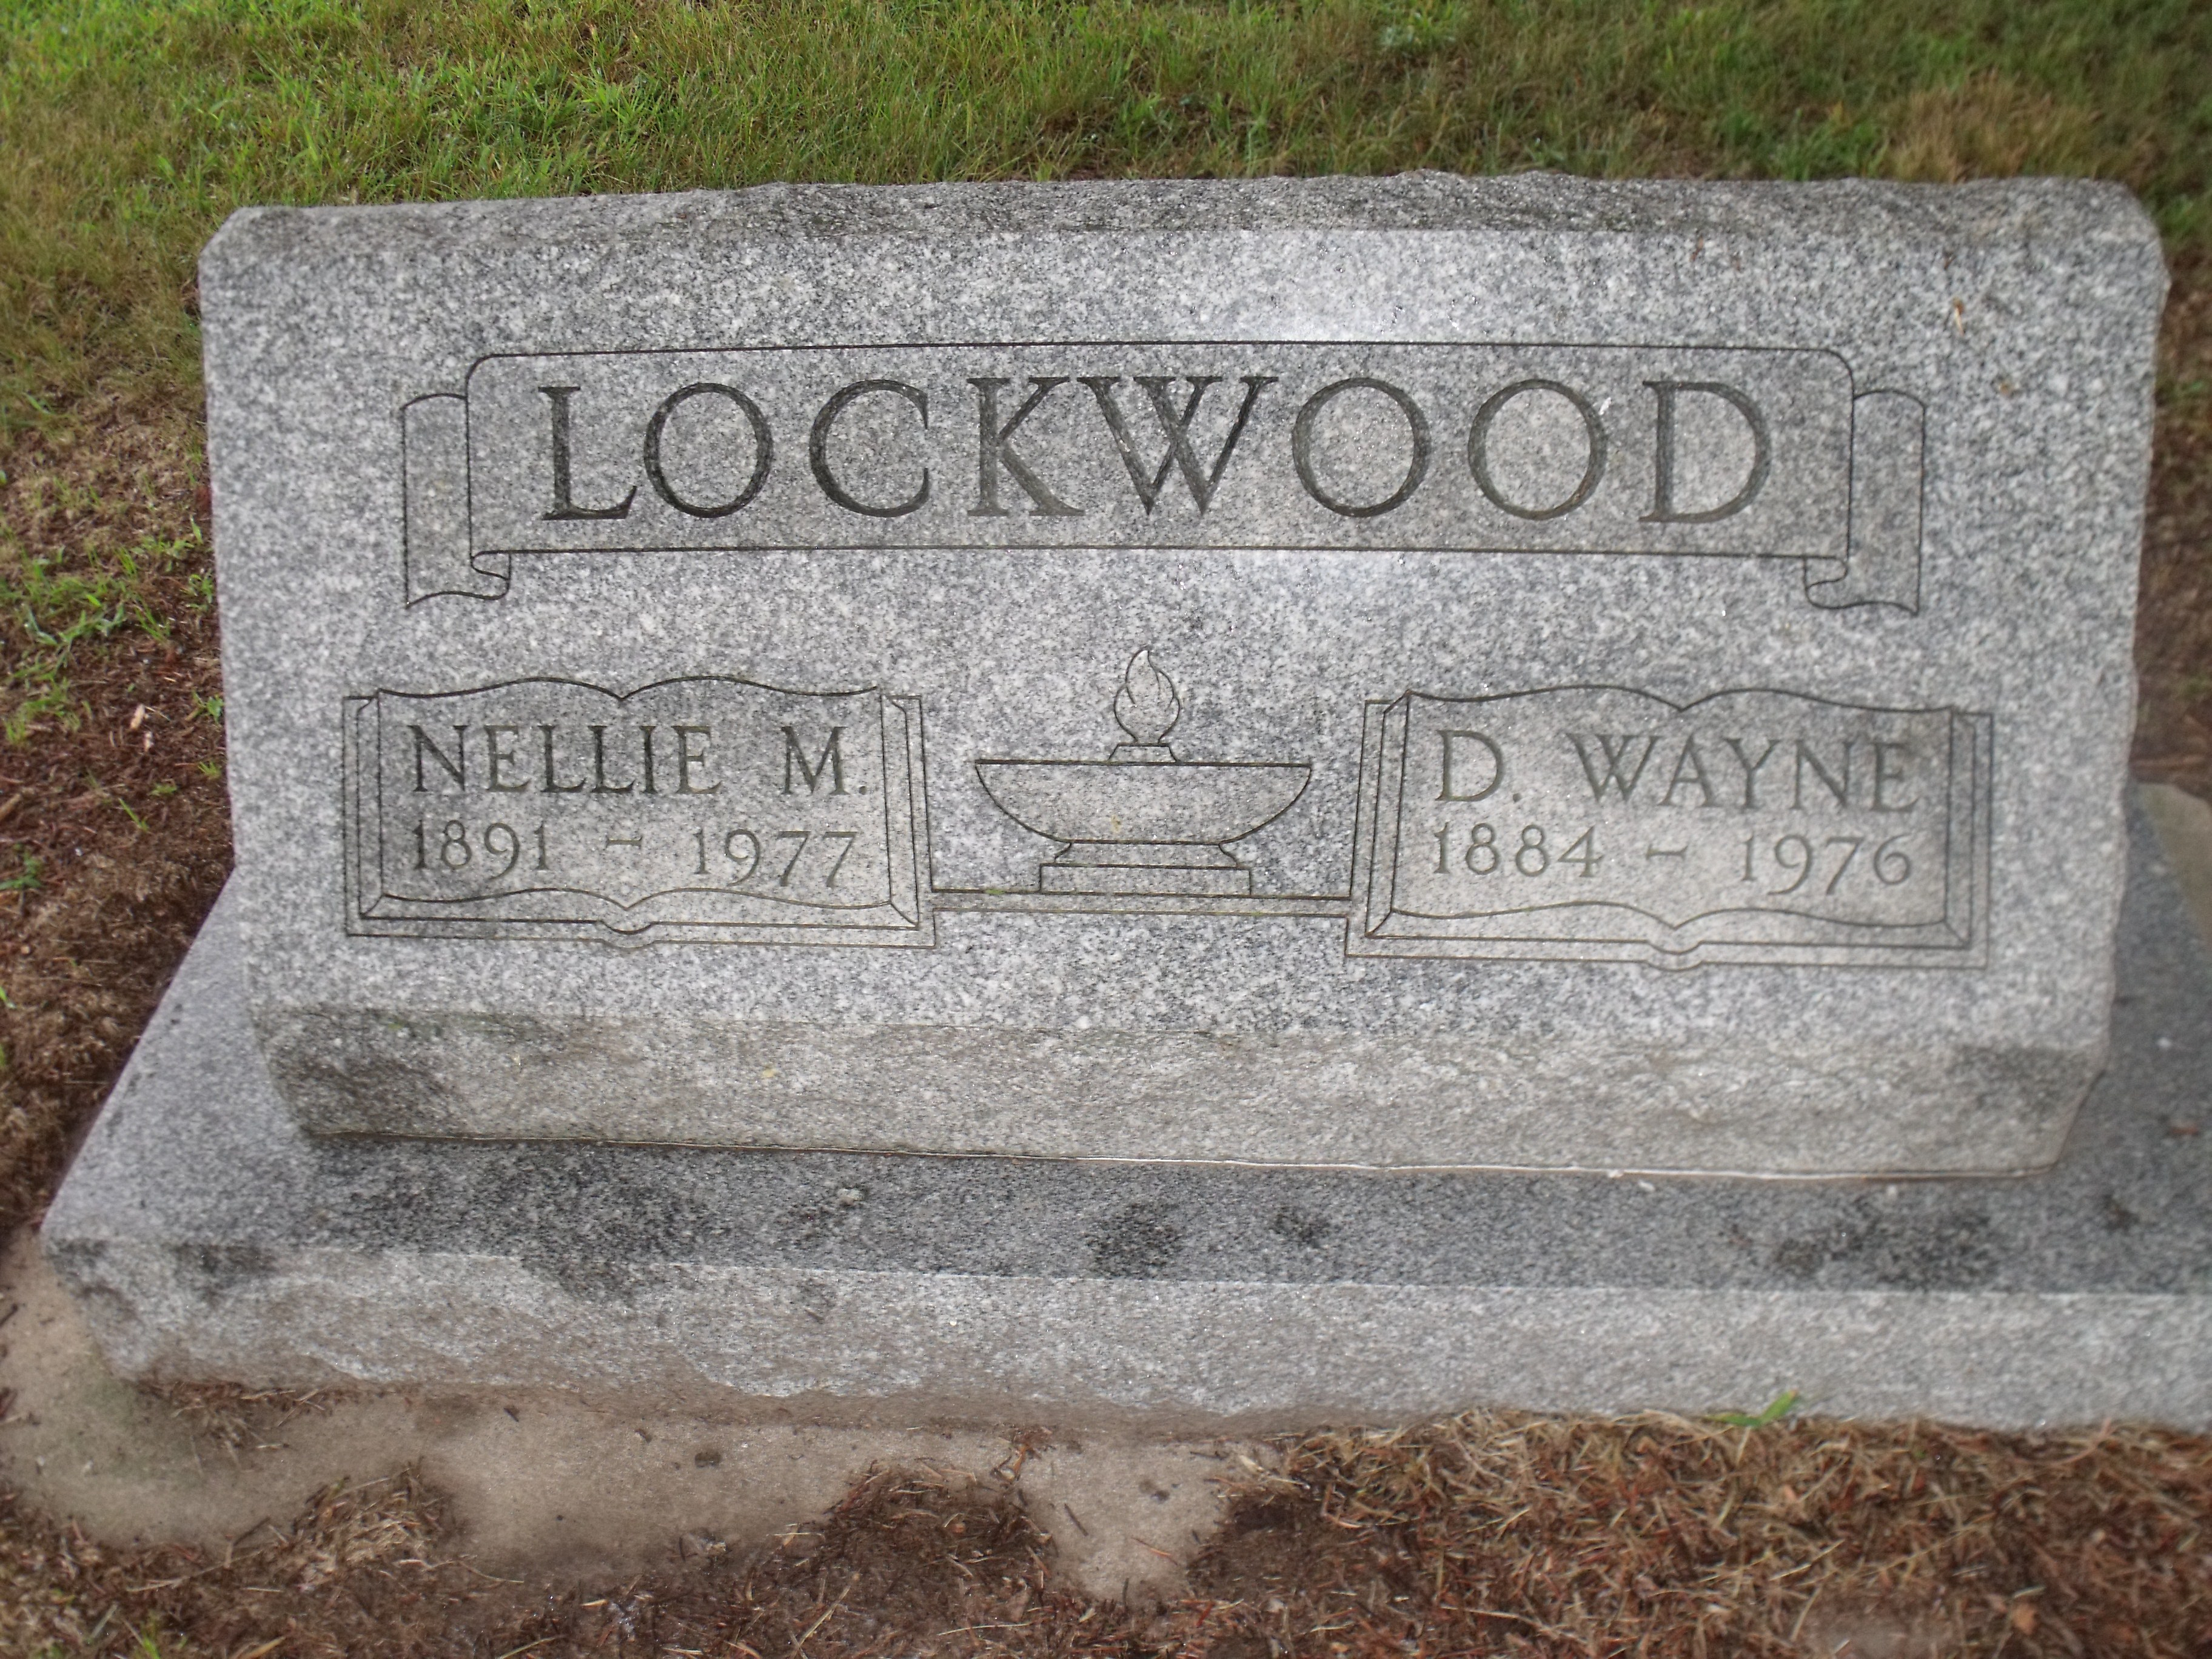 Kempton Selden Lockwood